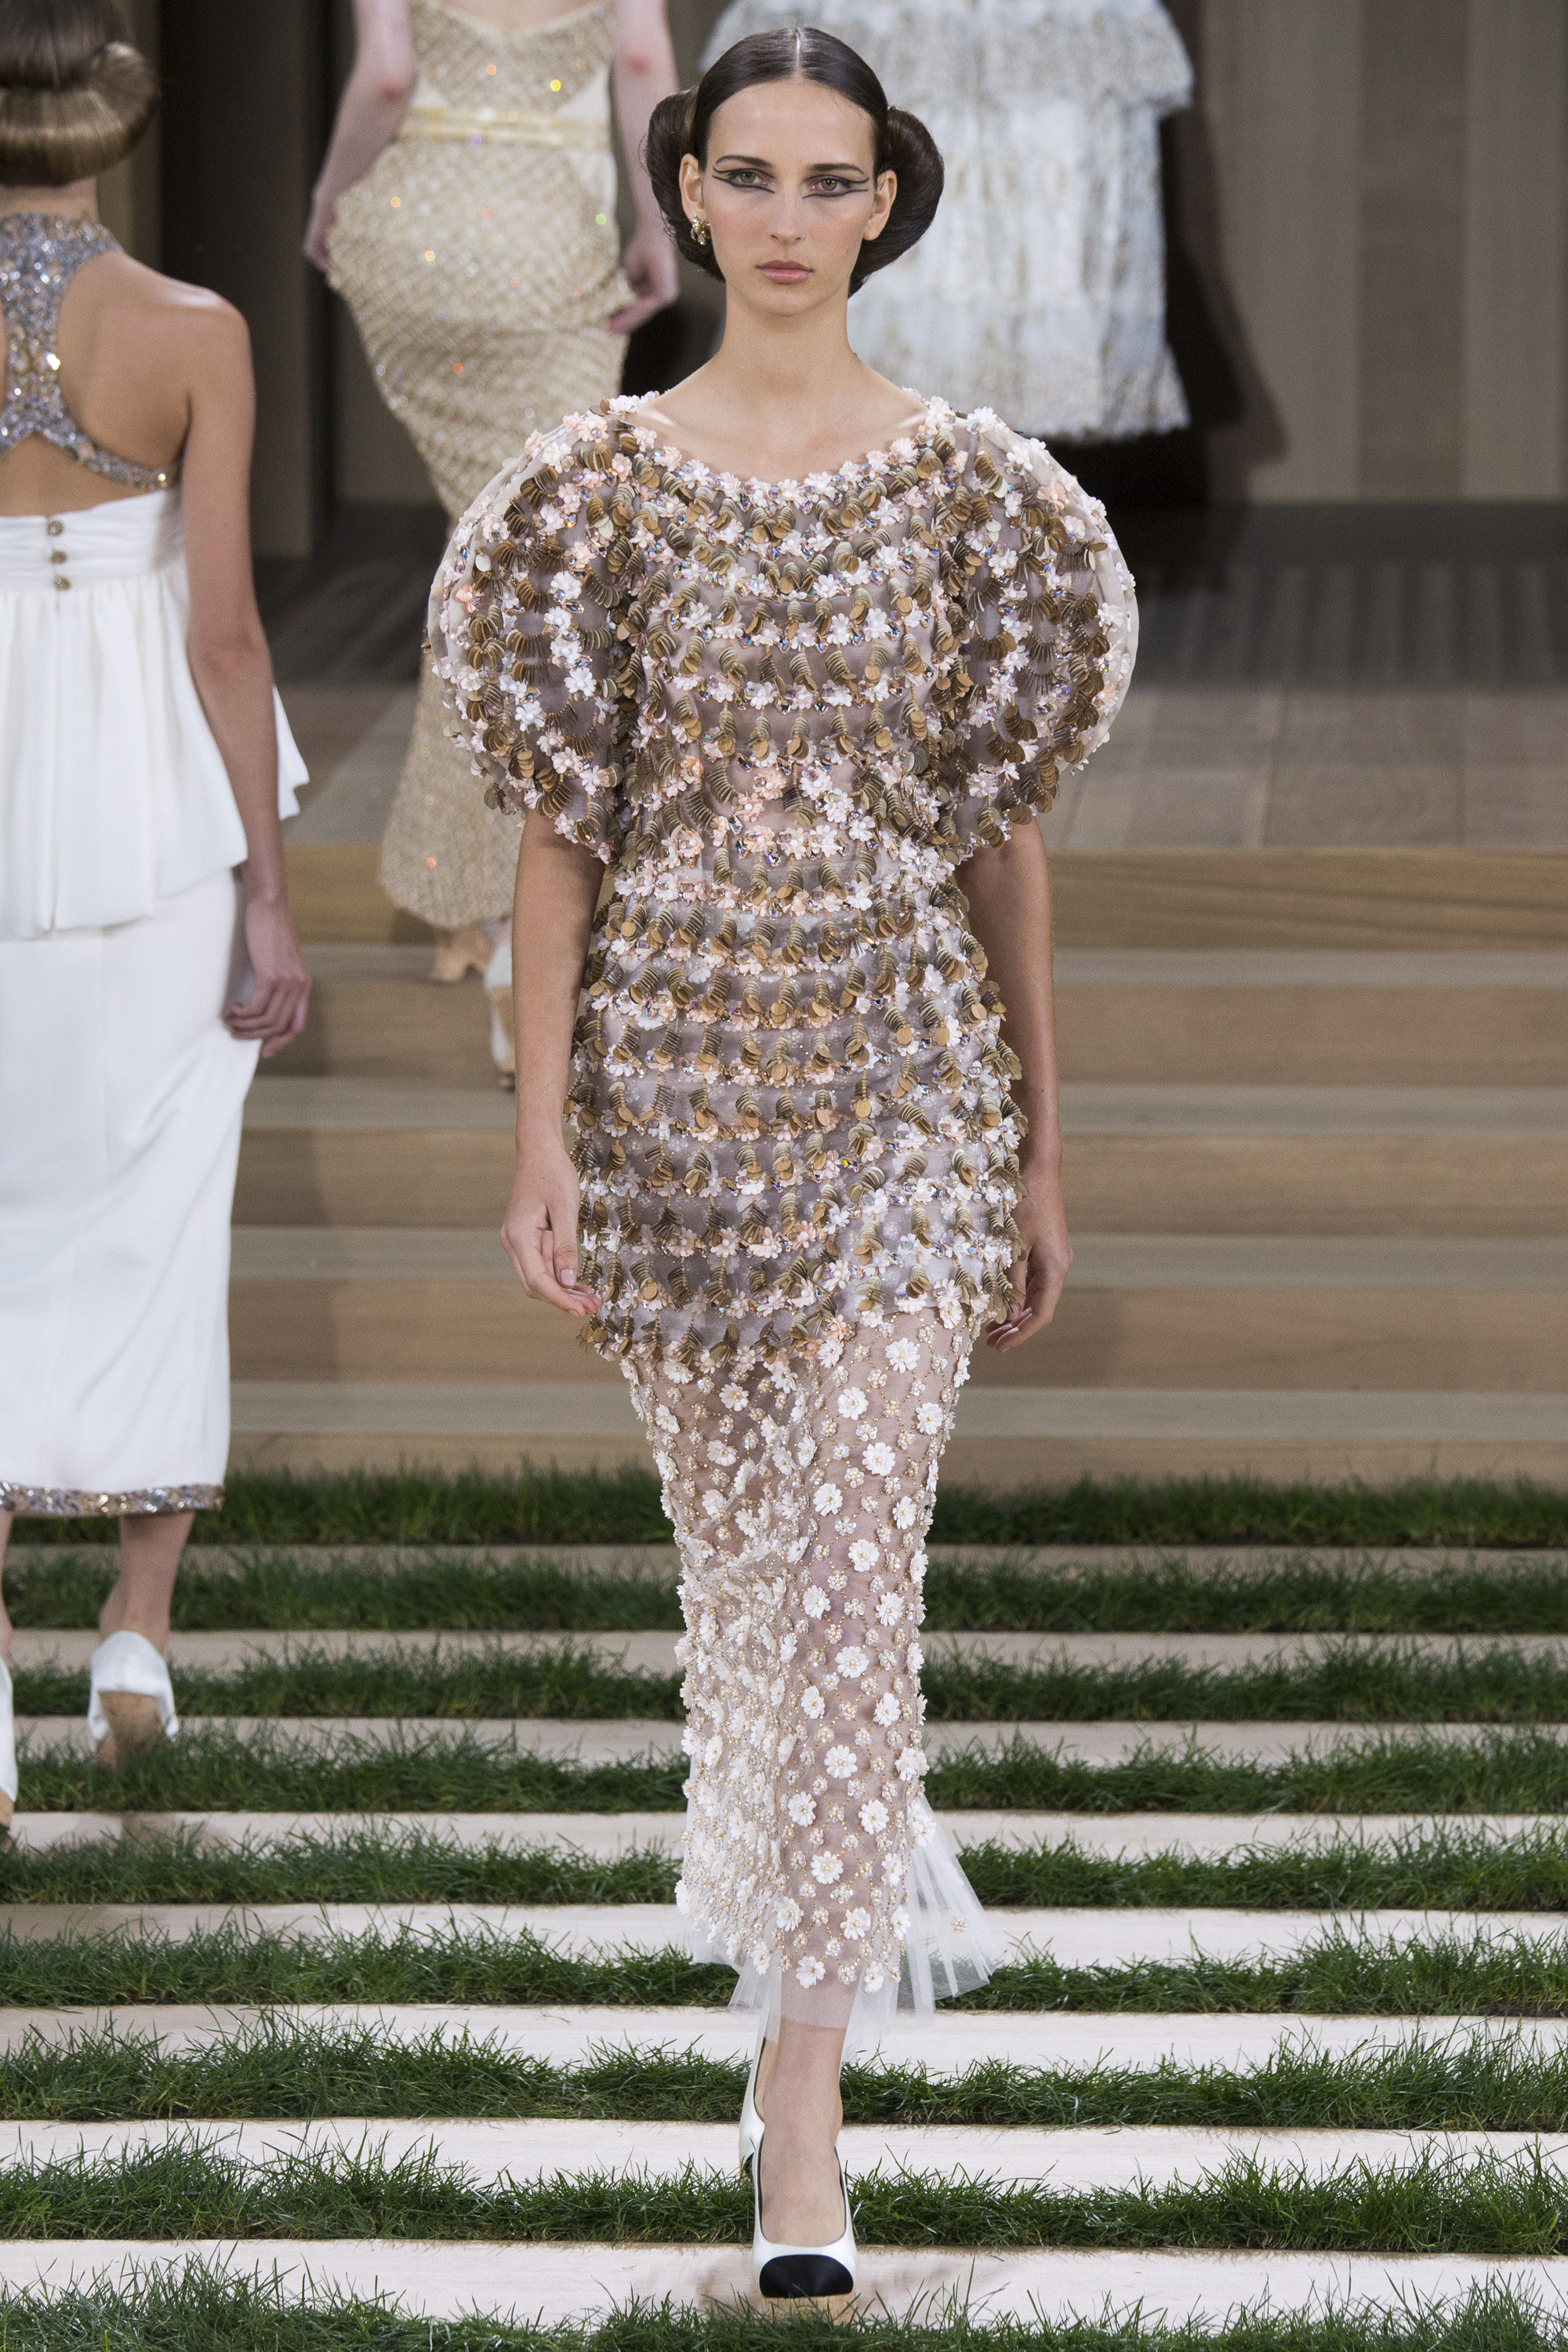 Chanel-Couture-Spring-2016-Paris-Fashion-Week-22.jpg